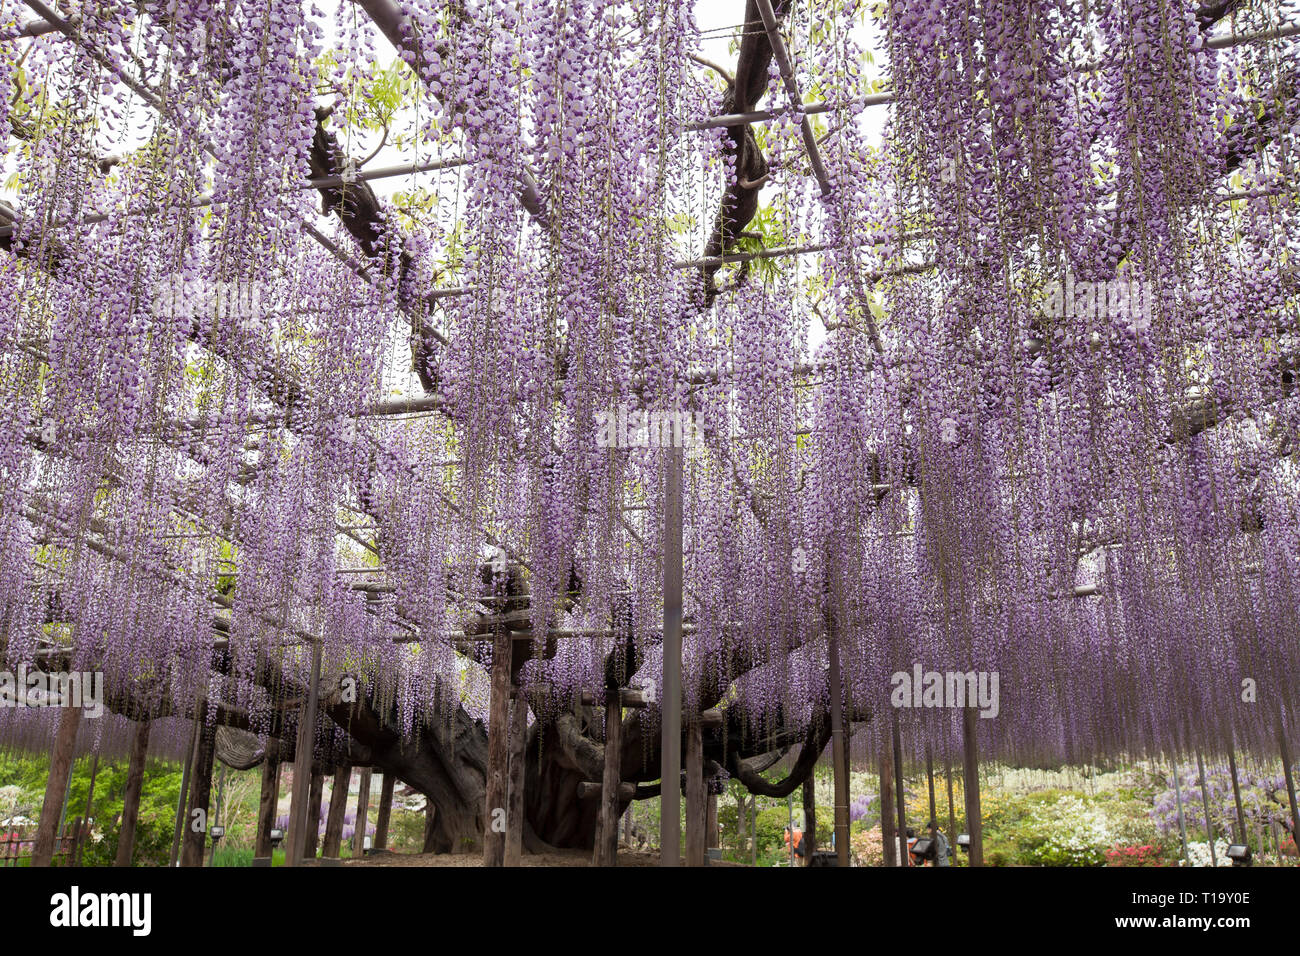 Structurally Supported Purple Wisteria Tree In Full Bloom At Ashikaga Flower Park Japan Stock Photo Alamy